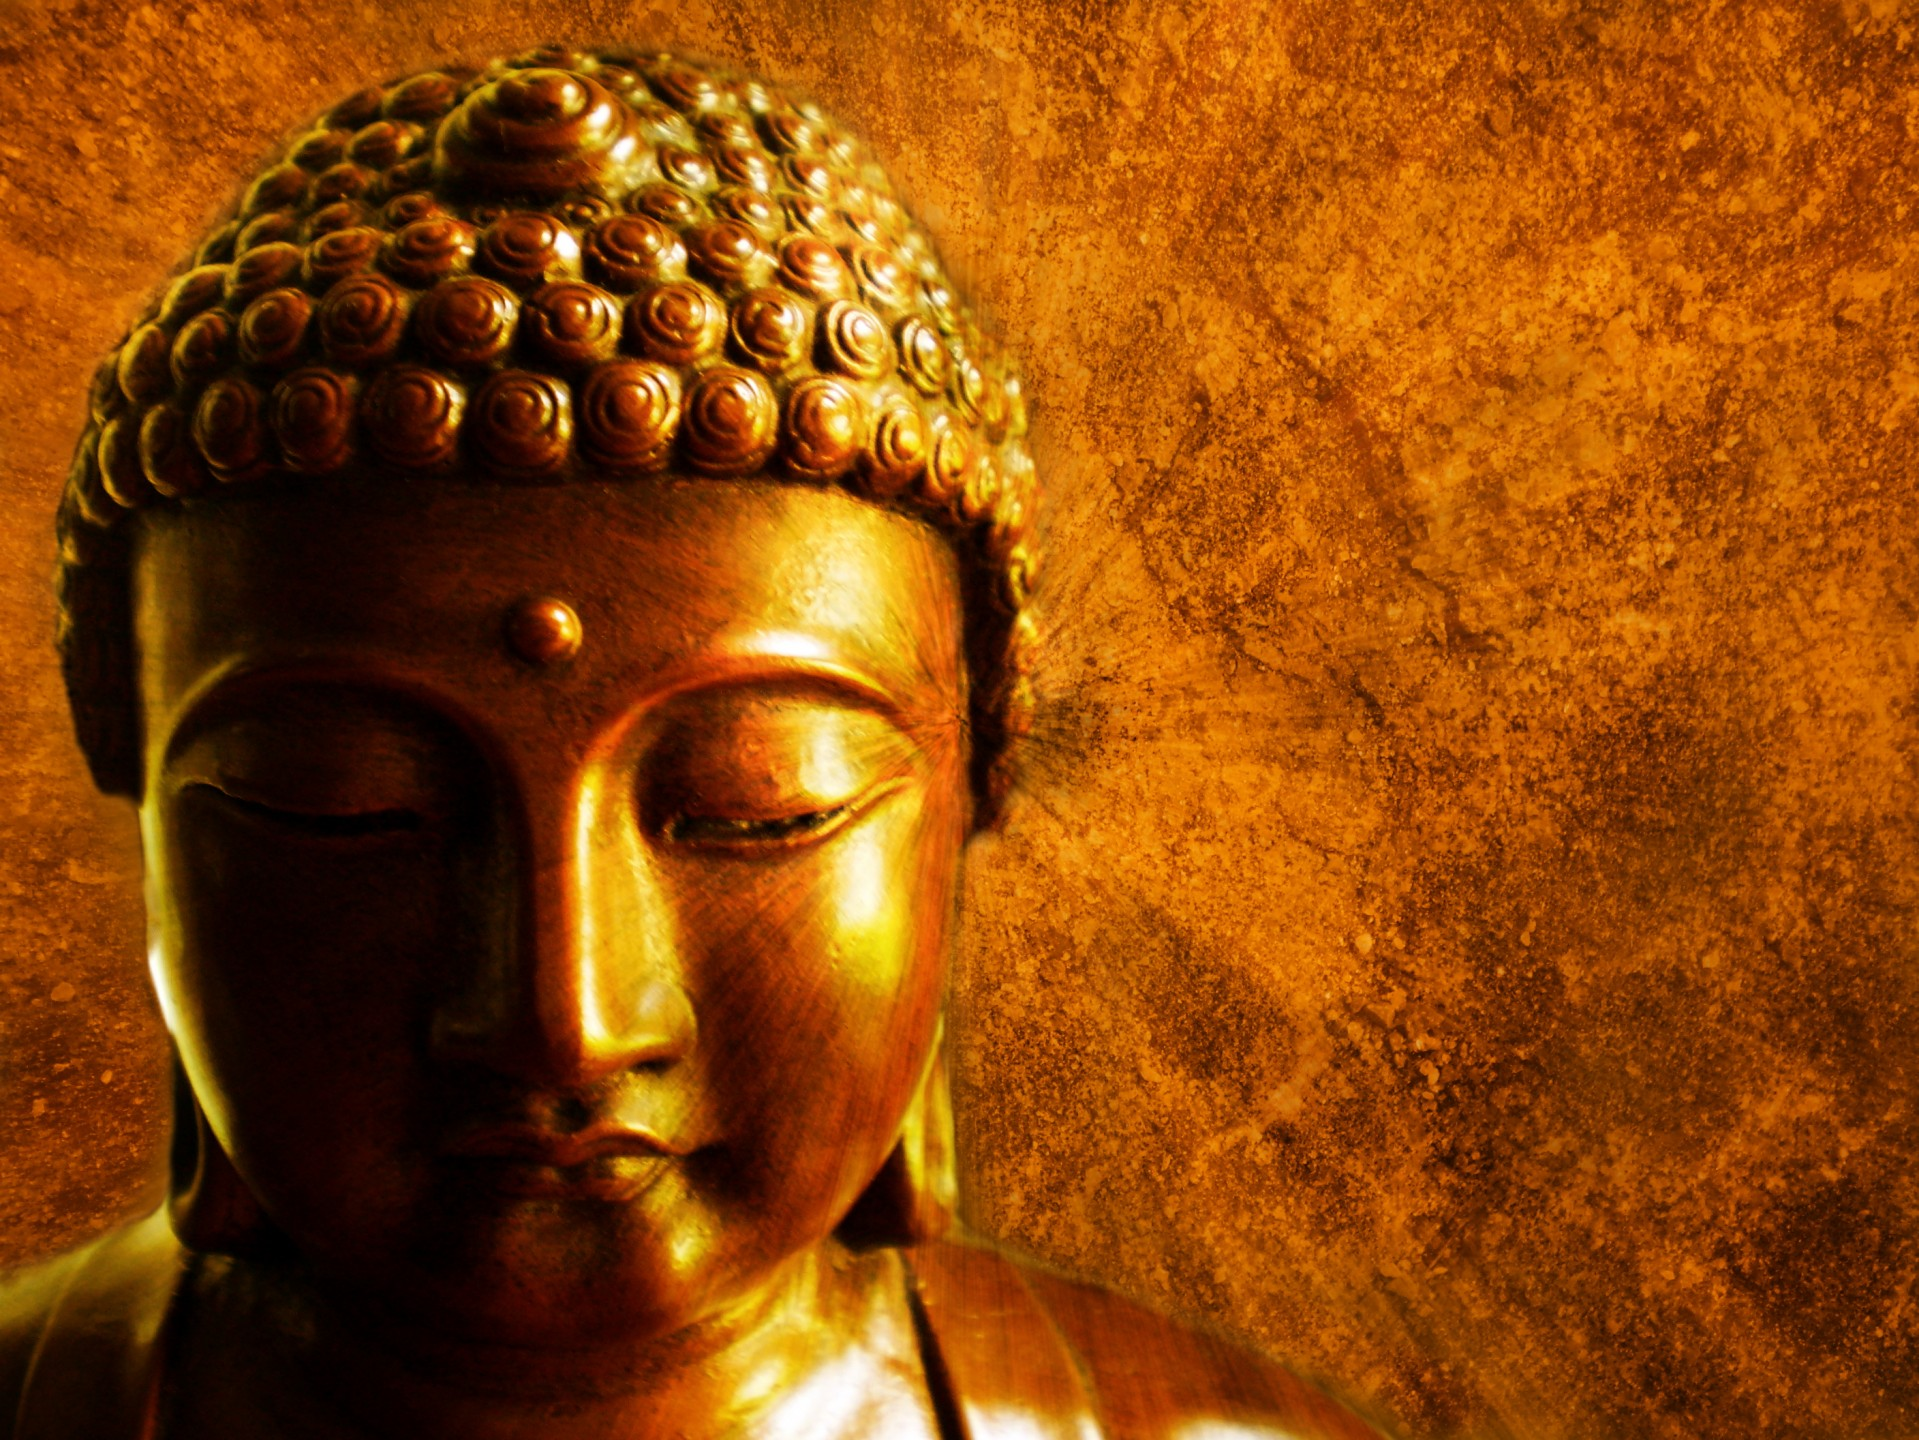 Shutterstock Hd Wallpapers Face Buddha Free Stock Photo Public Domain Pictures